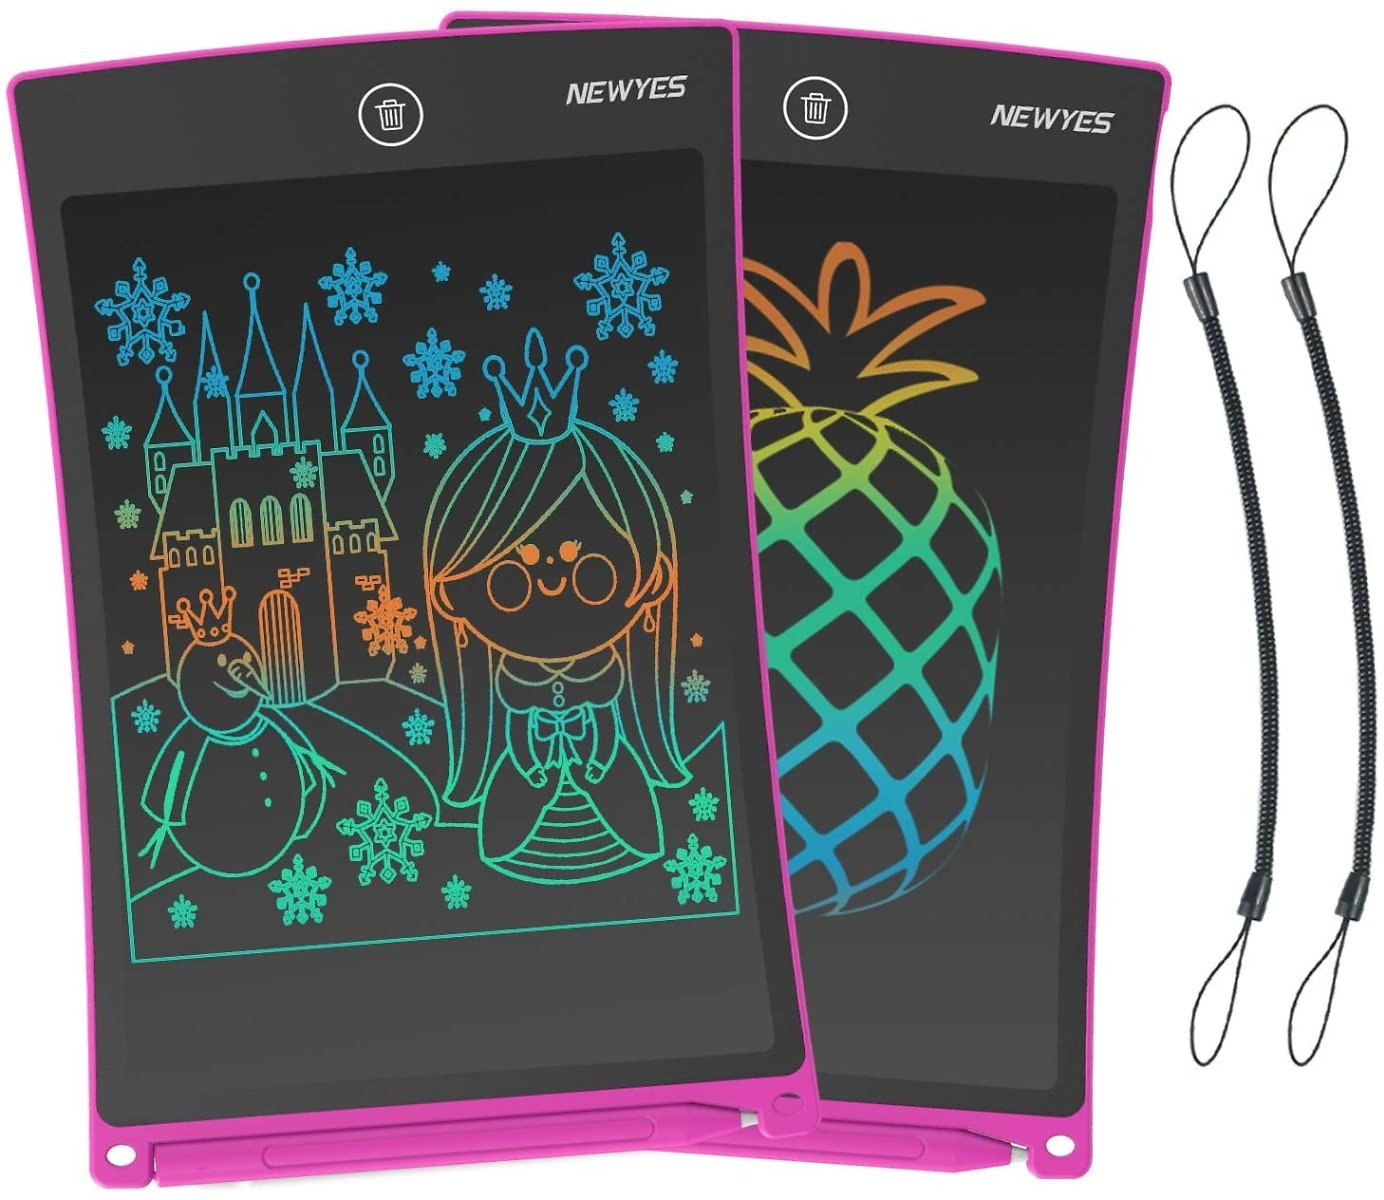 Save 50% On 2 Pack NEWYES LCD Writing Tablet 8.5 Inch Colorful Drawing Doodle Board